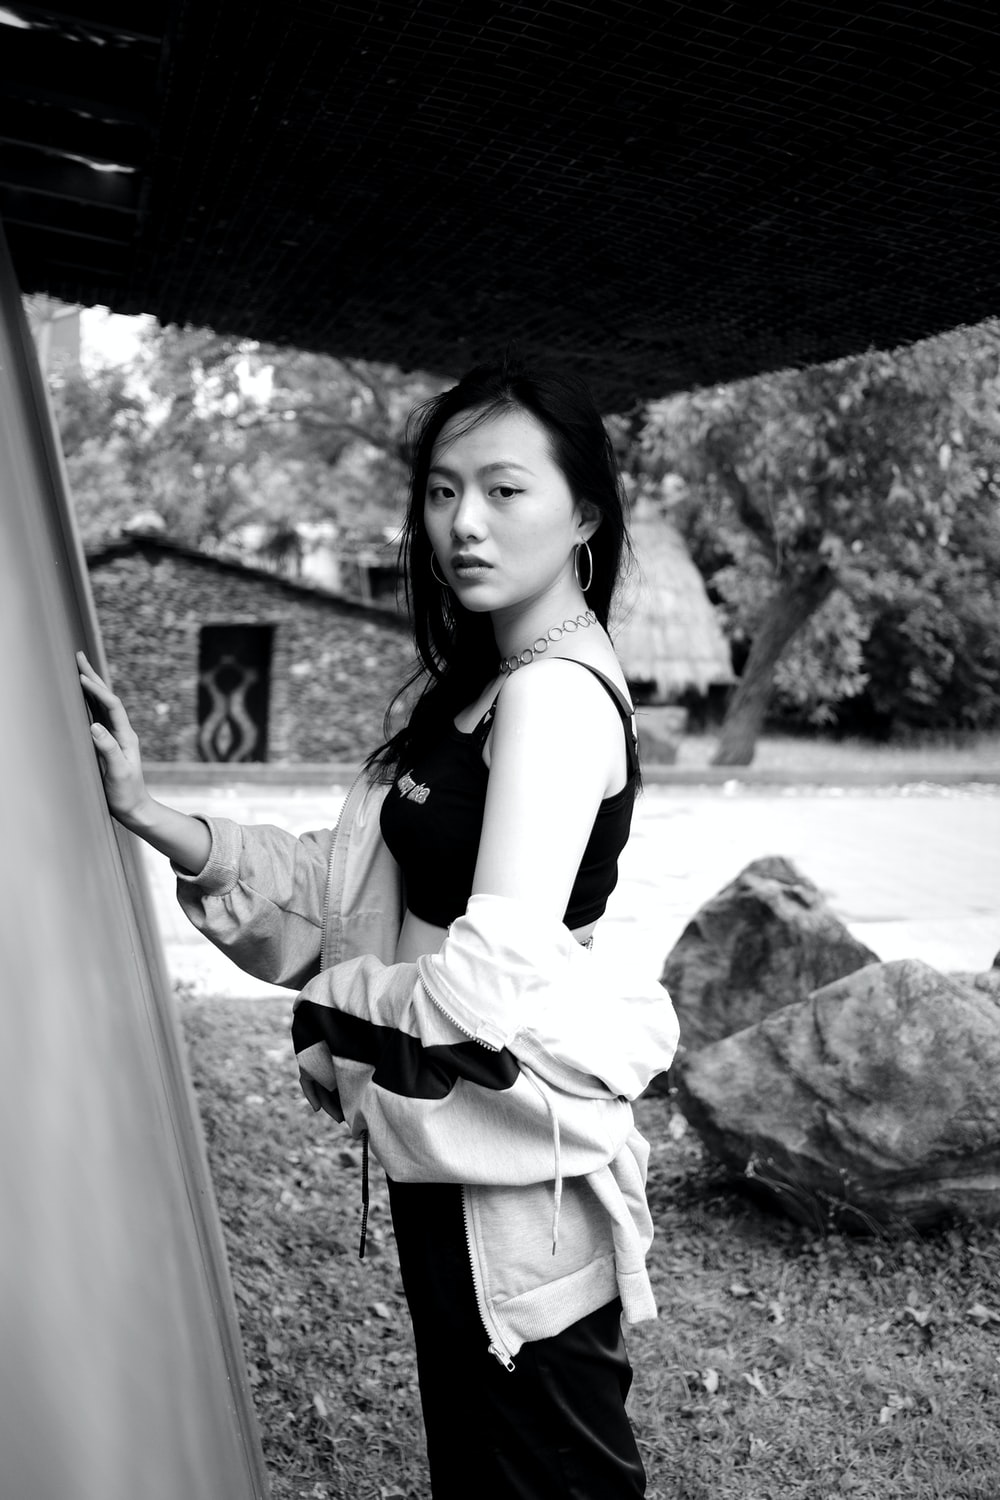 woman in white and black dress standing near body of water during daytime